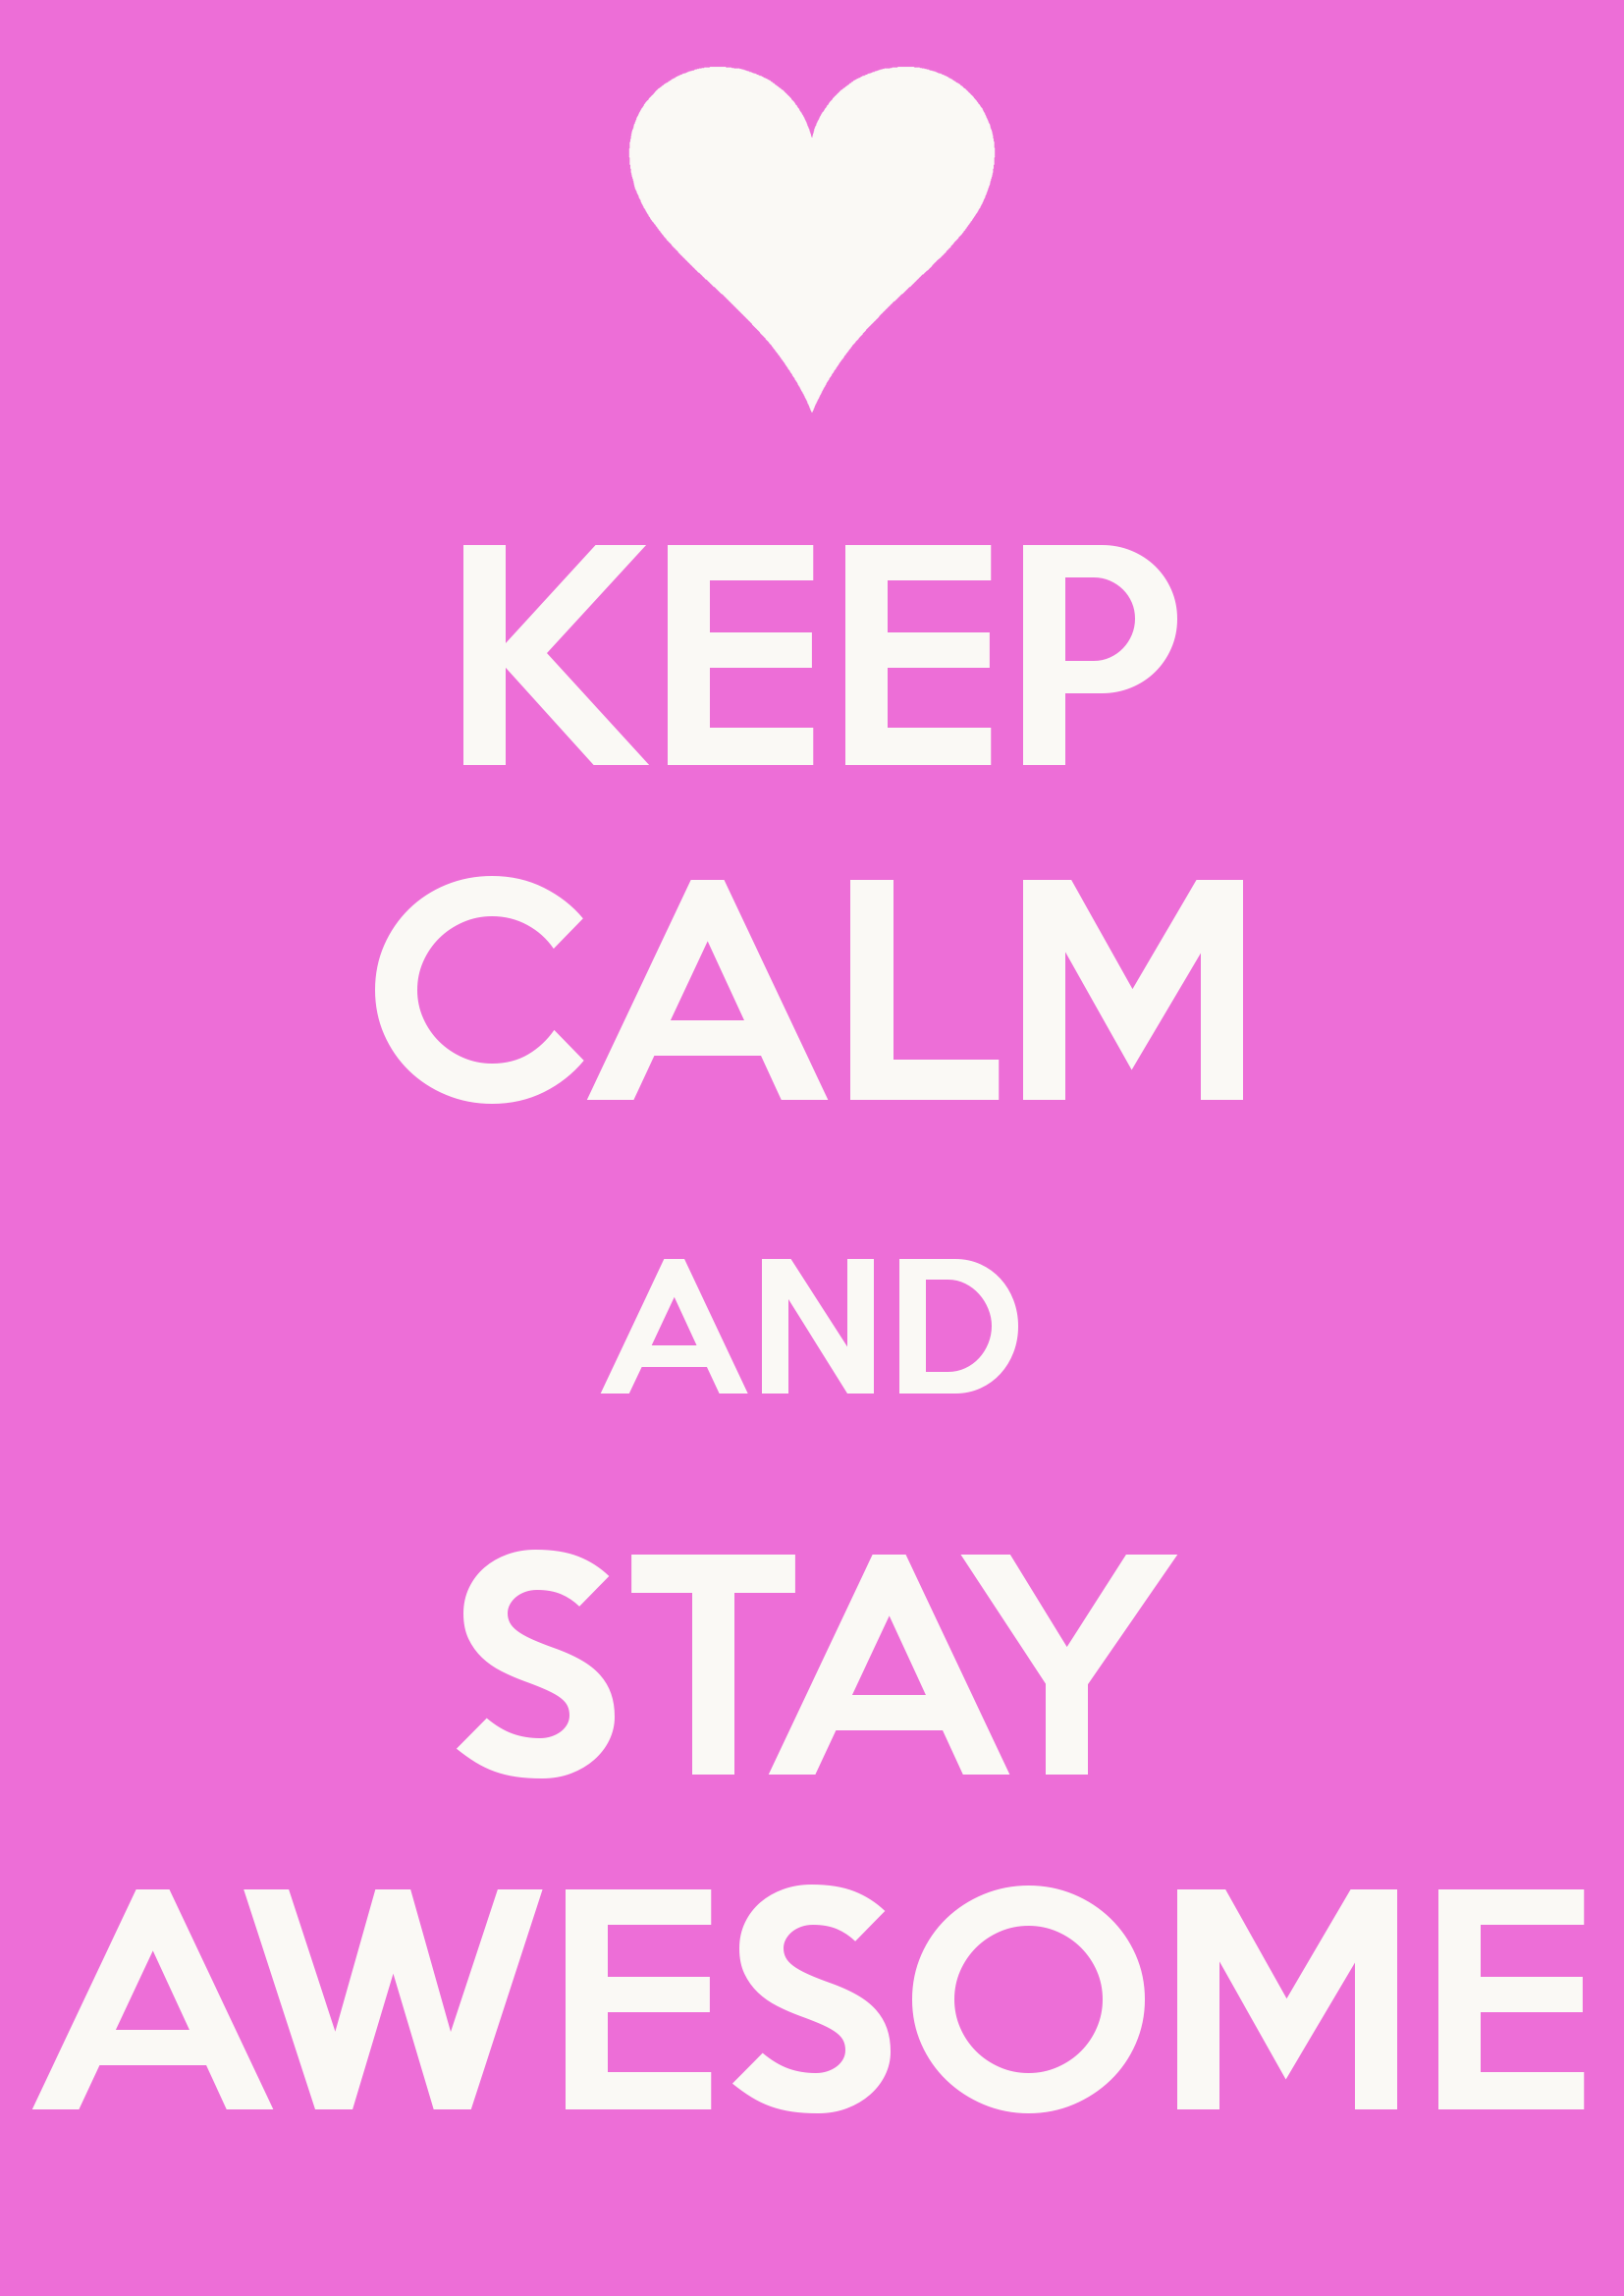 keep calm posters | KEEP CALM Poster Board | Pinterest